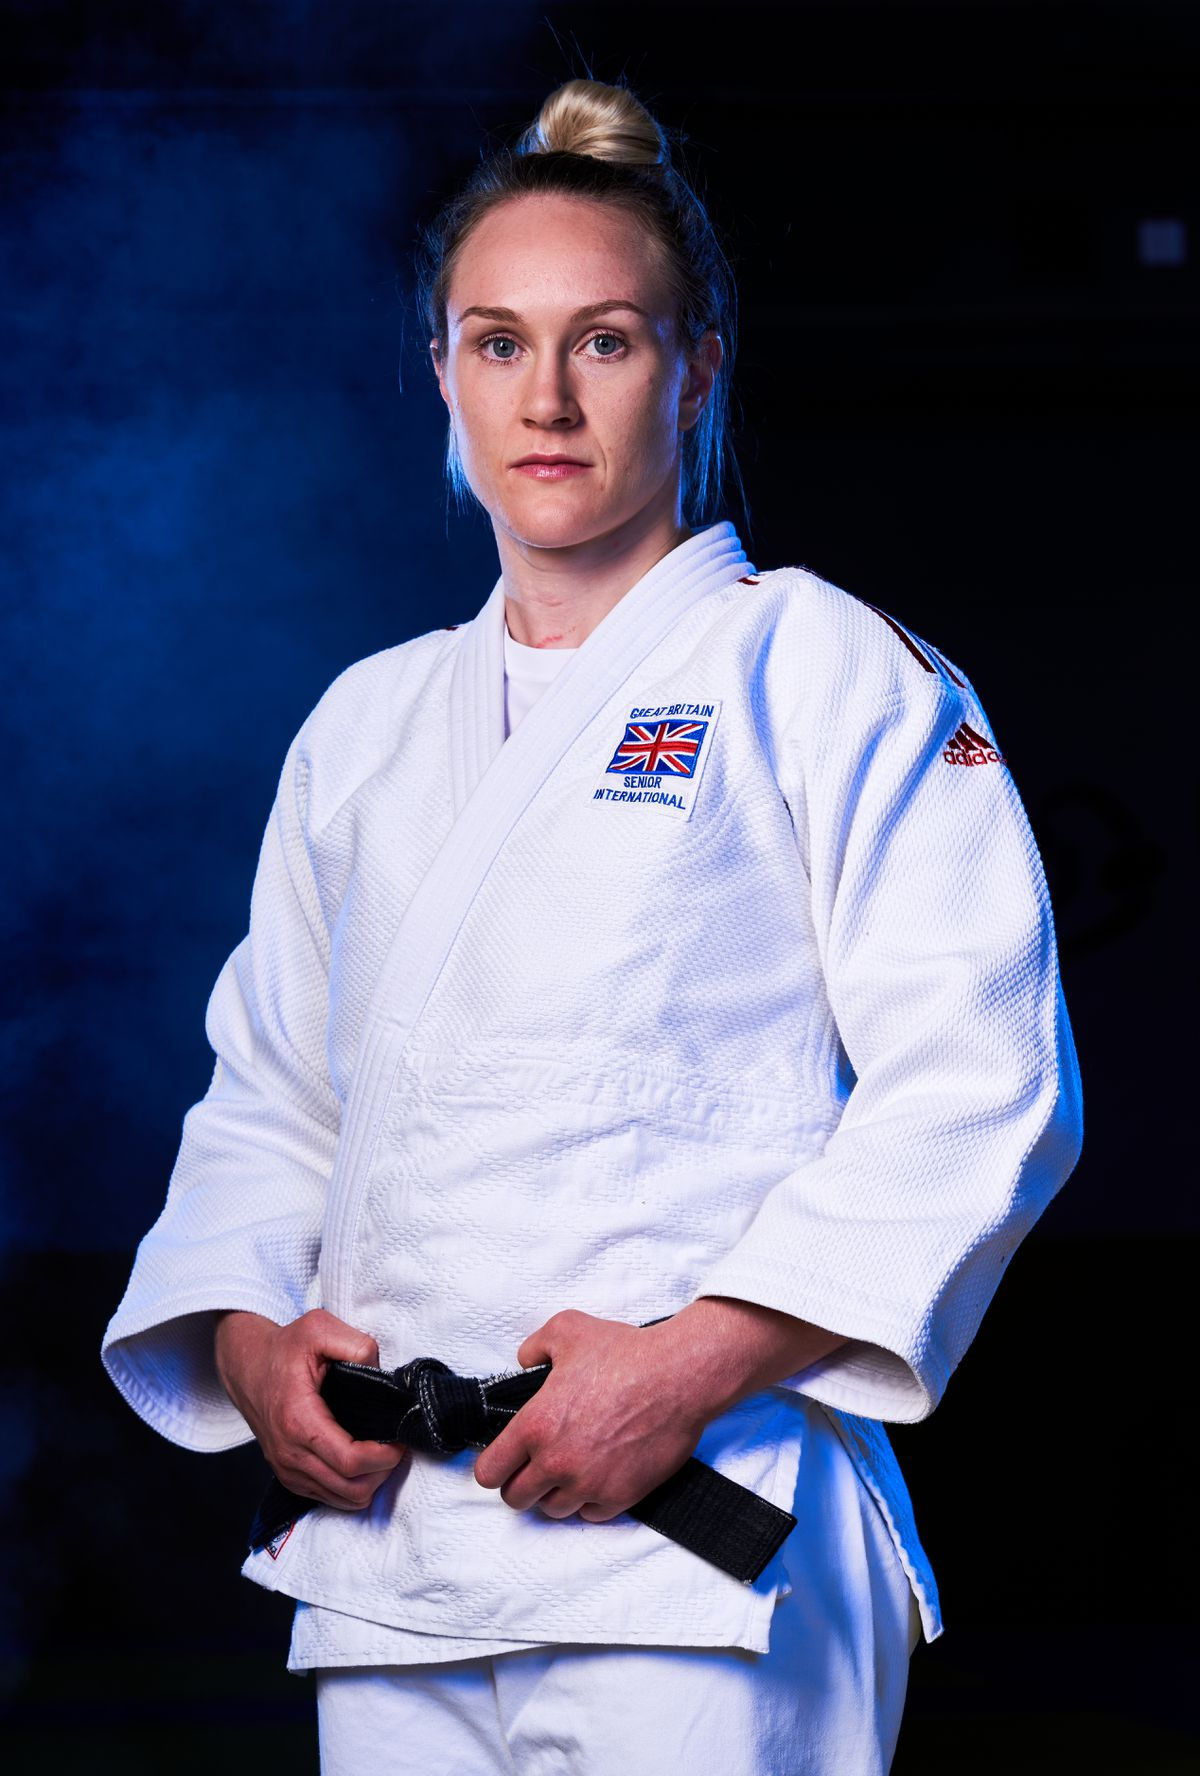 Team GB's Gemma Howell during the Judo World Championships team announcement and media day at the BJA Centre of Excellence, Walsall..